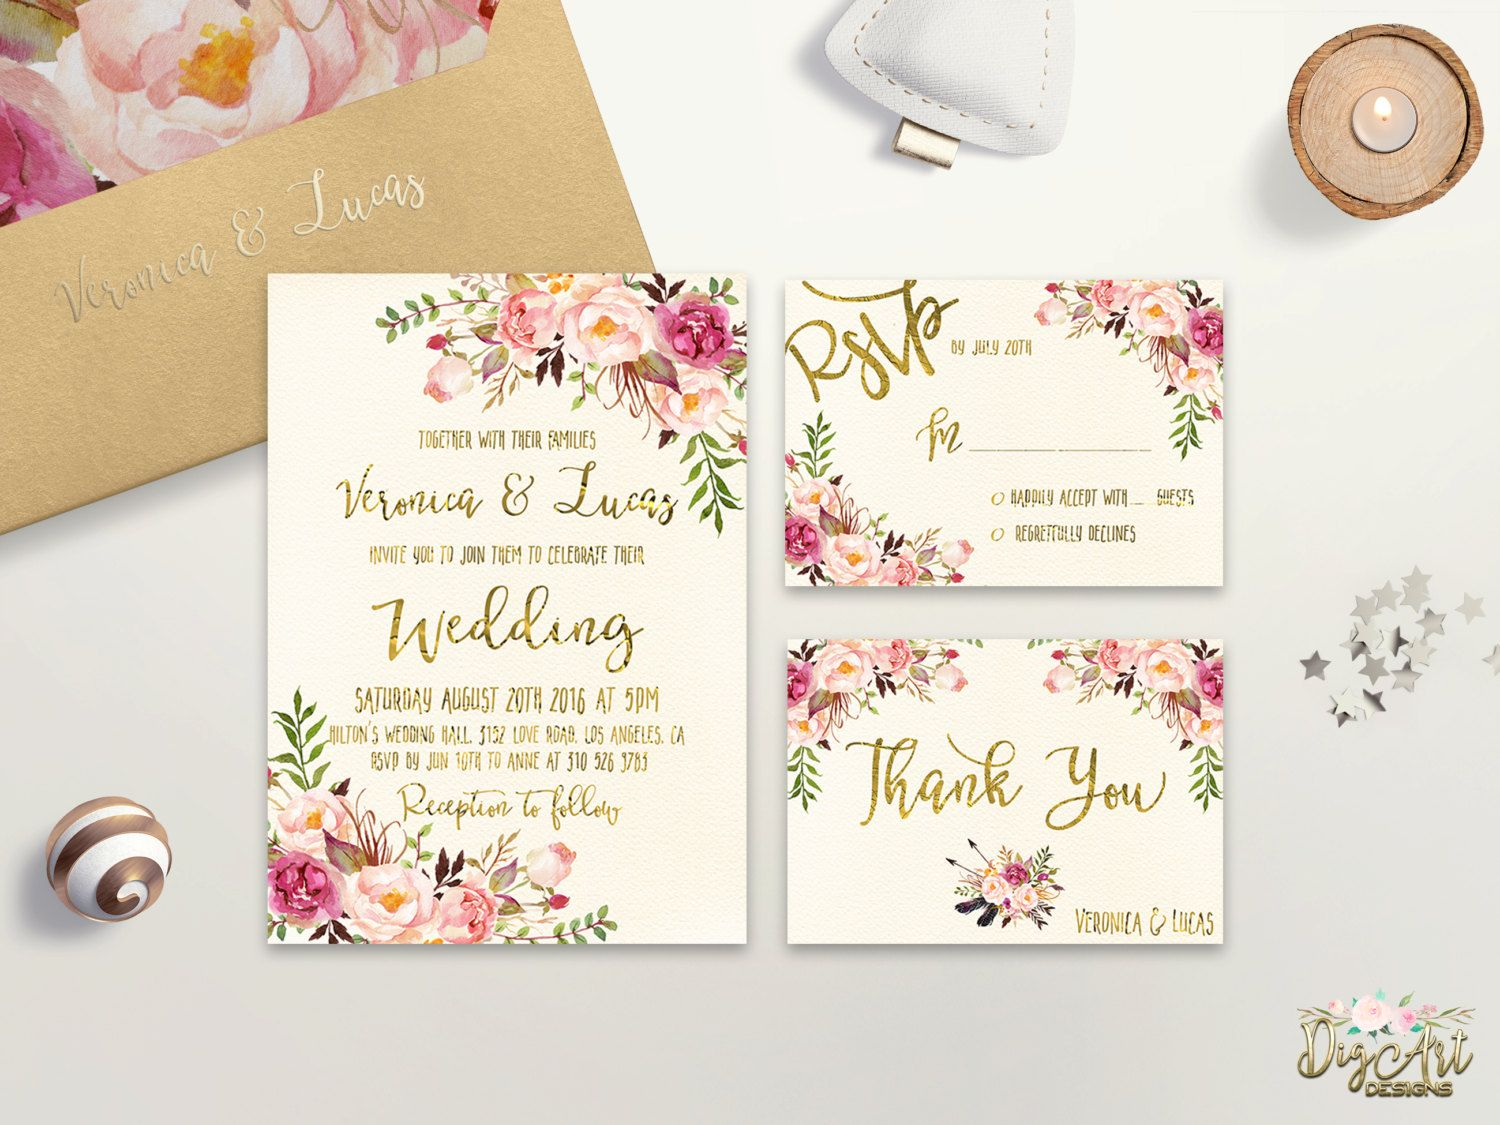 What Needs To Be Included In A Wedding Invitation: Floral Wedding Invitation Printable Wedding Invitation